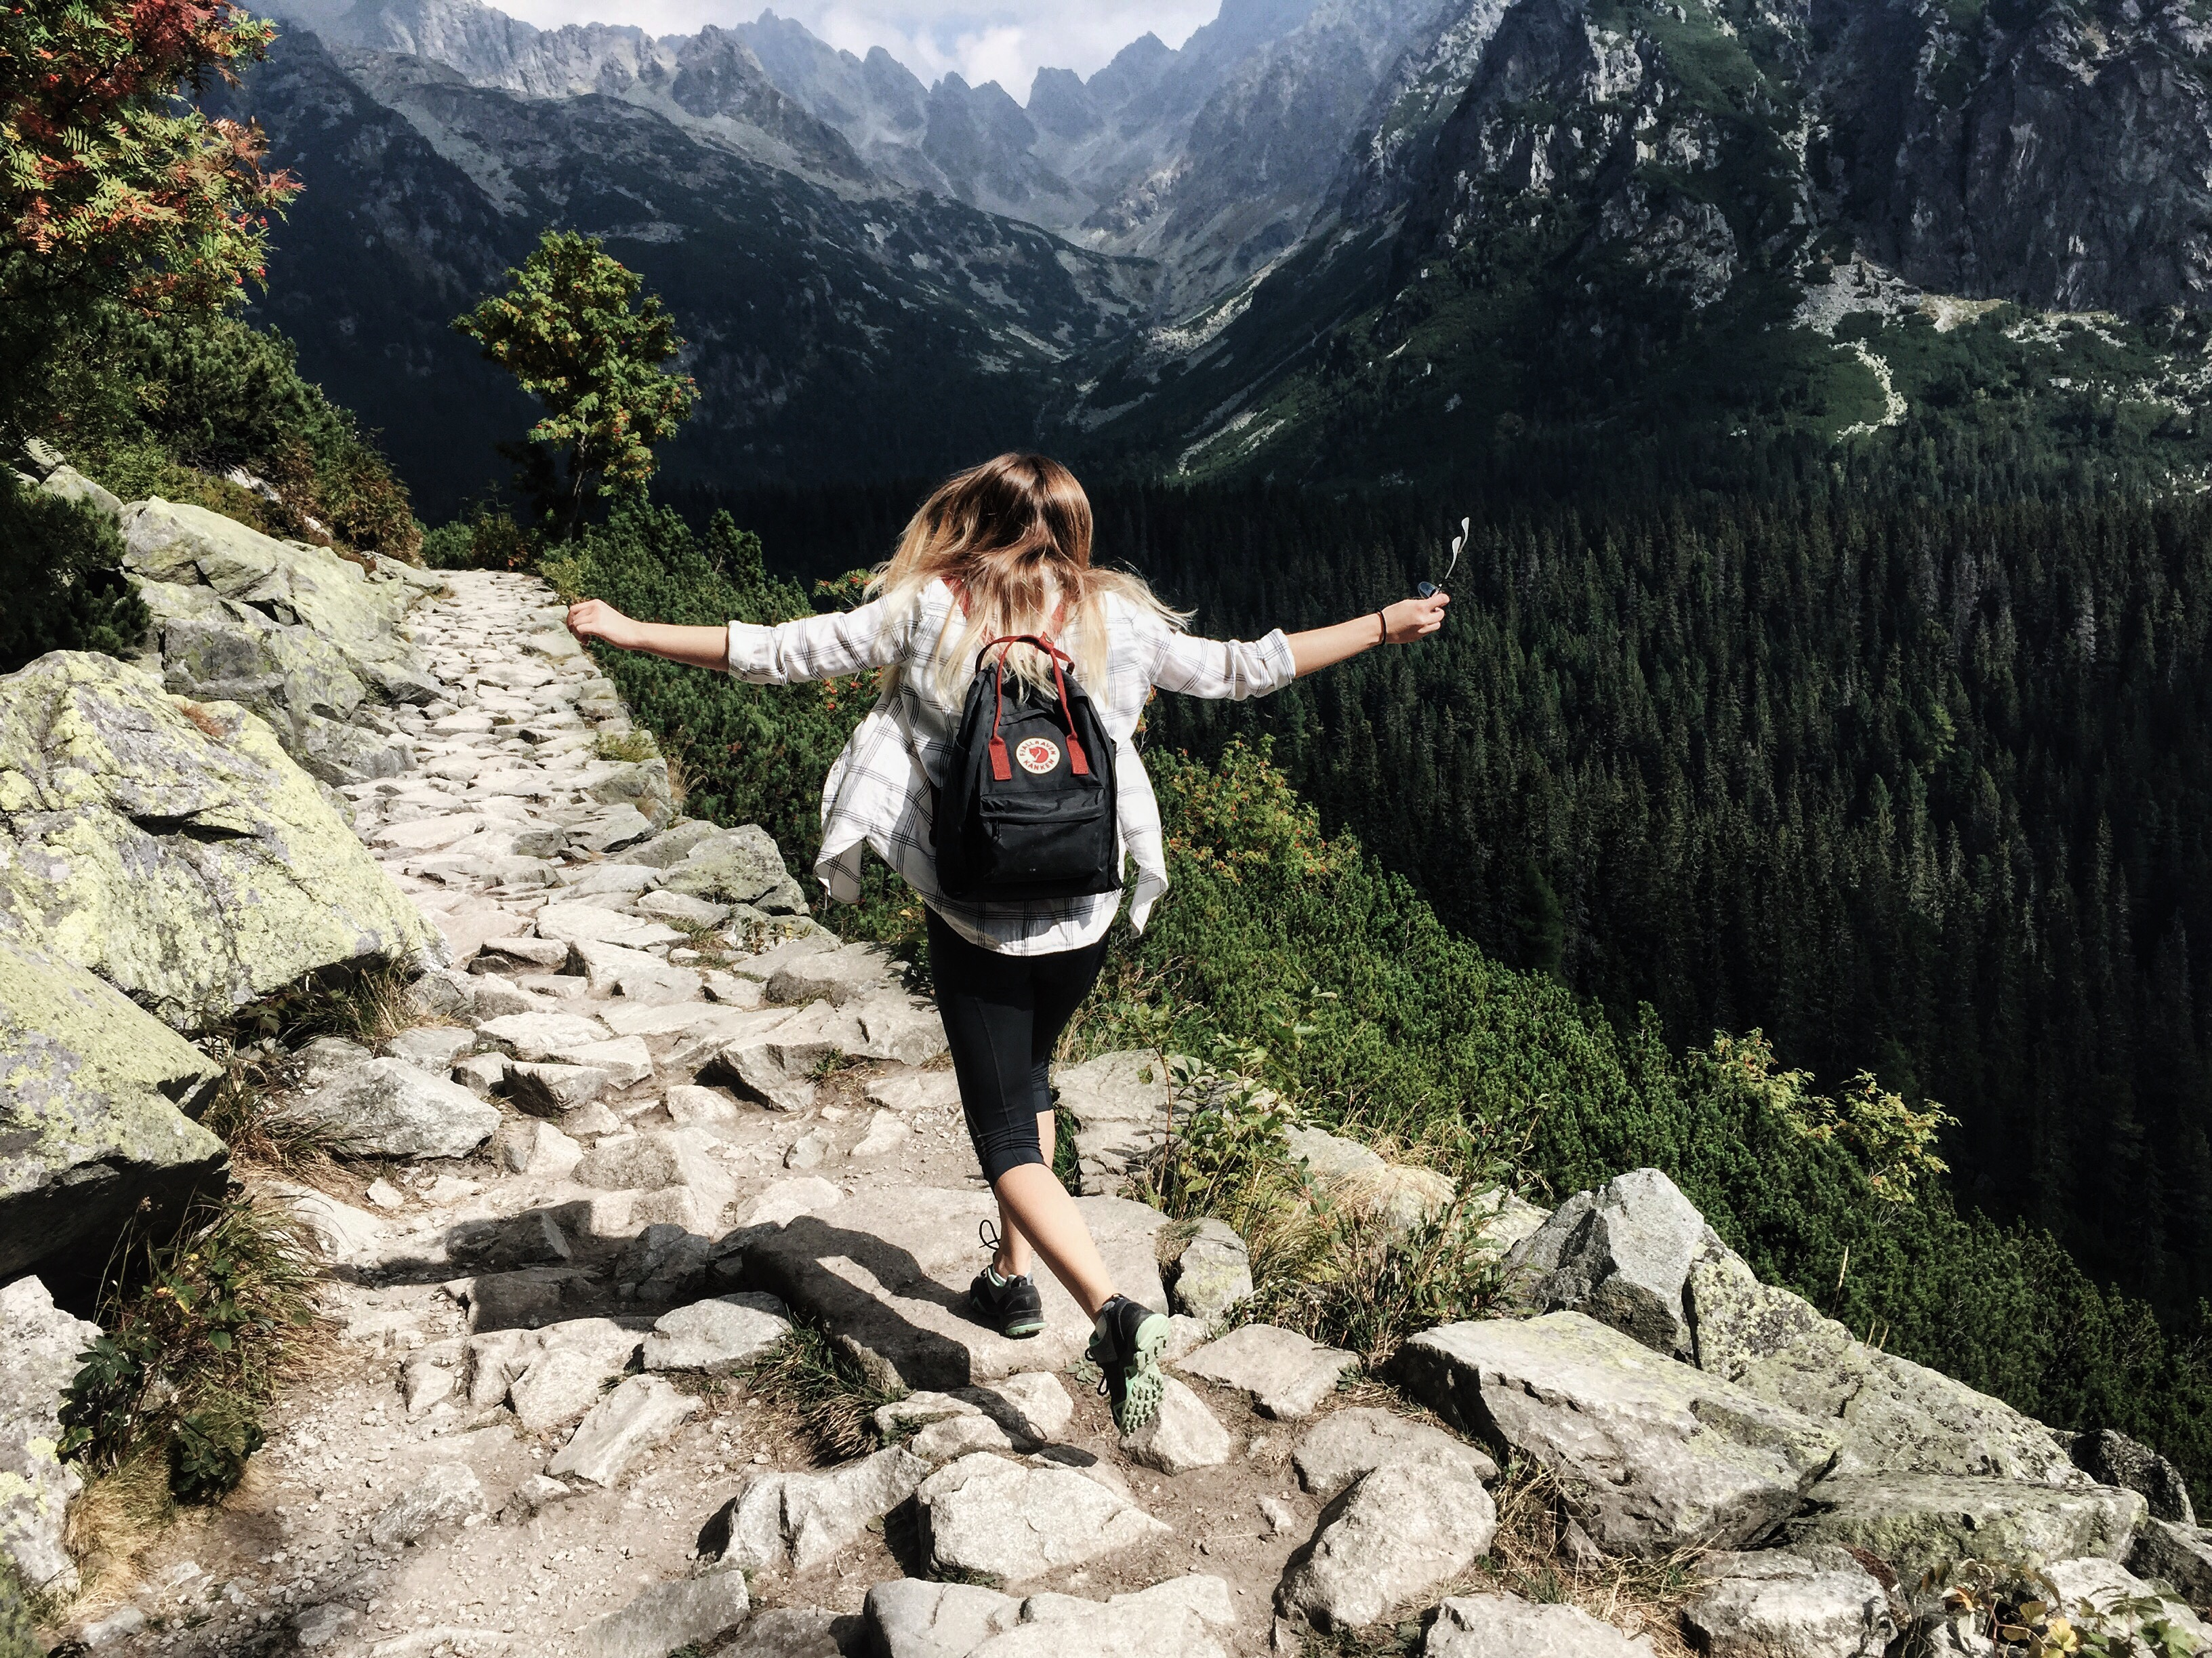 Image of a girl trekking on rocky ground